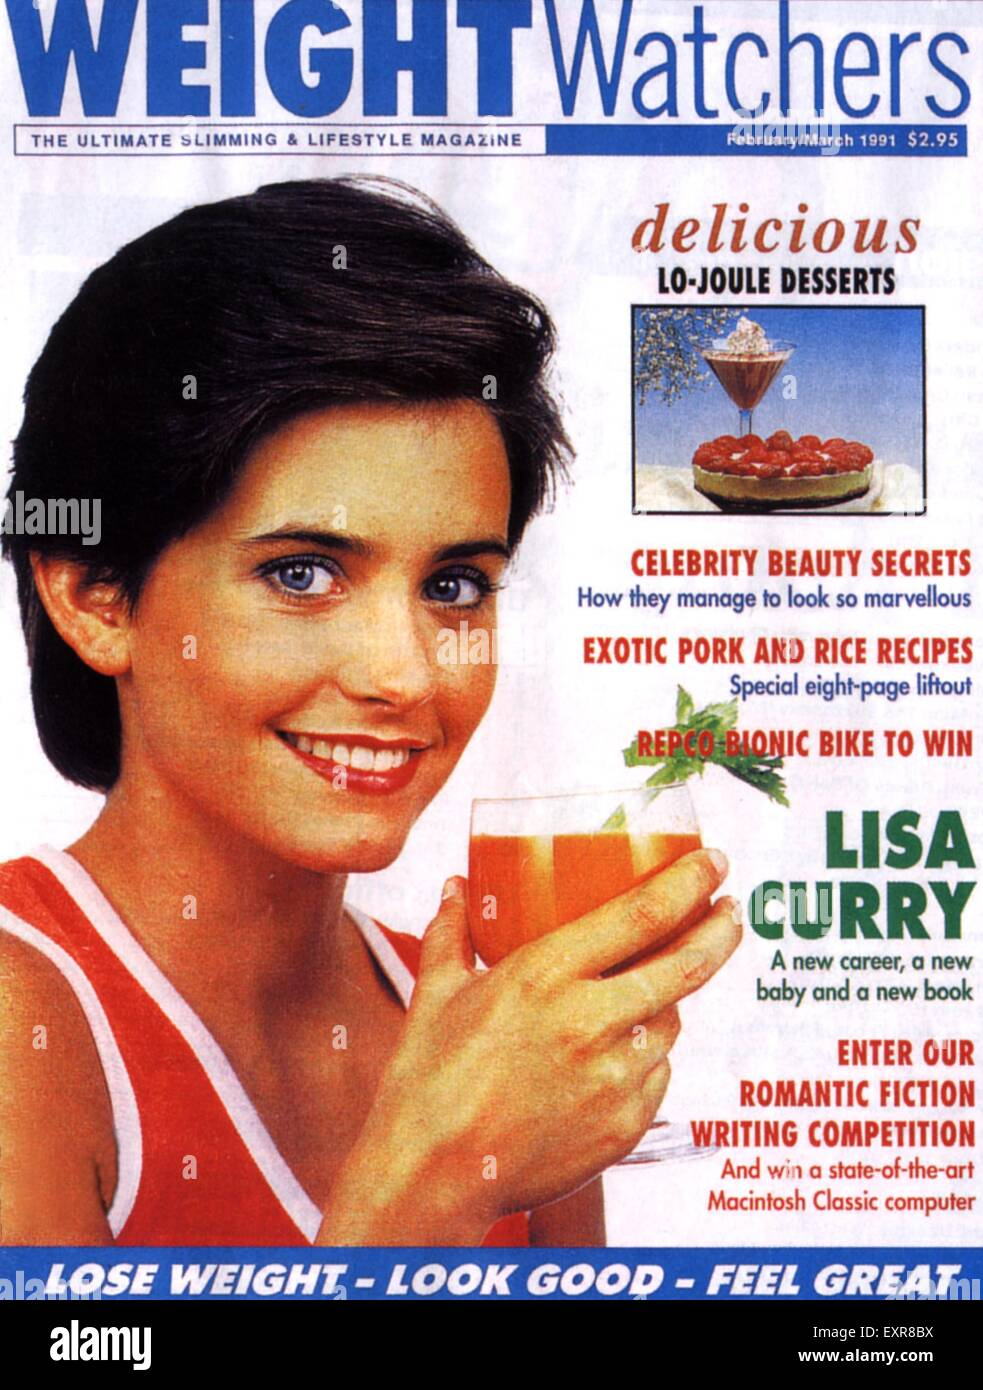 1990s UK Weight Watchers Magazine Cover - Stock Image